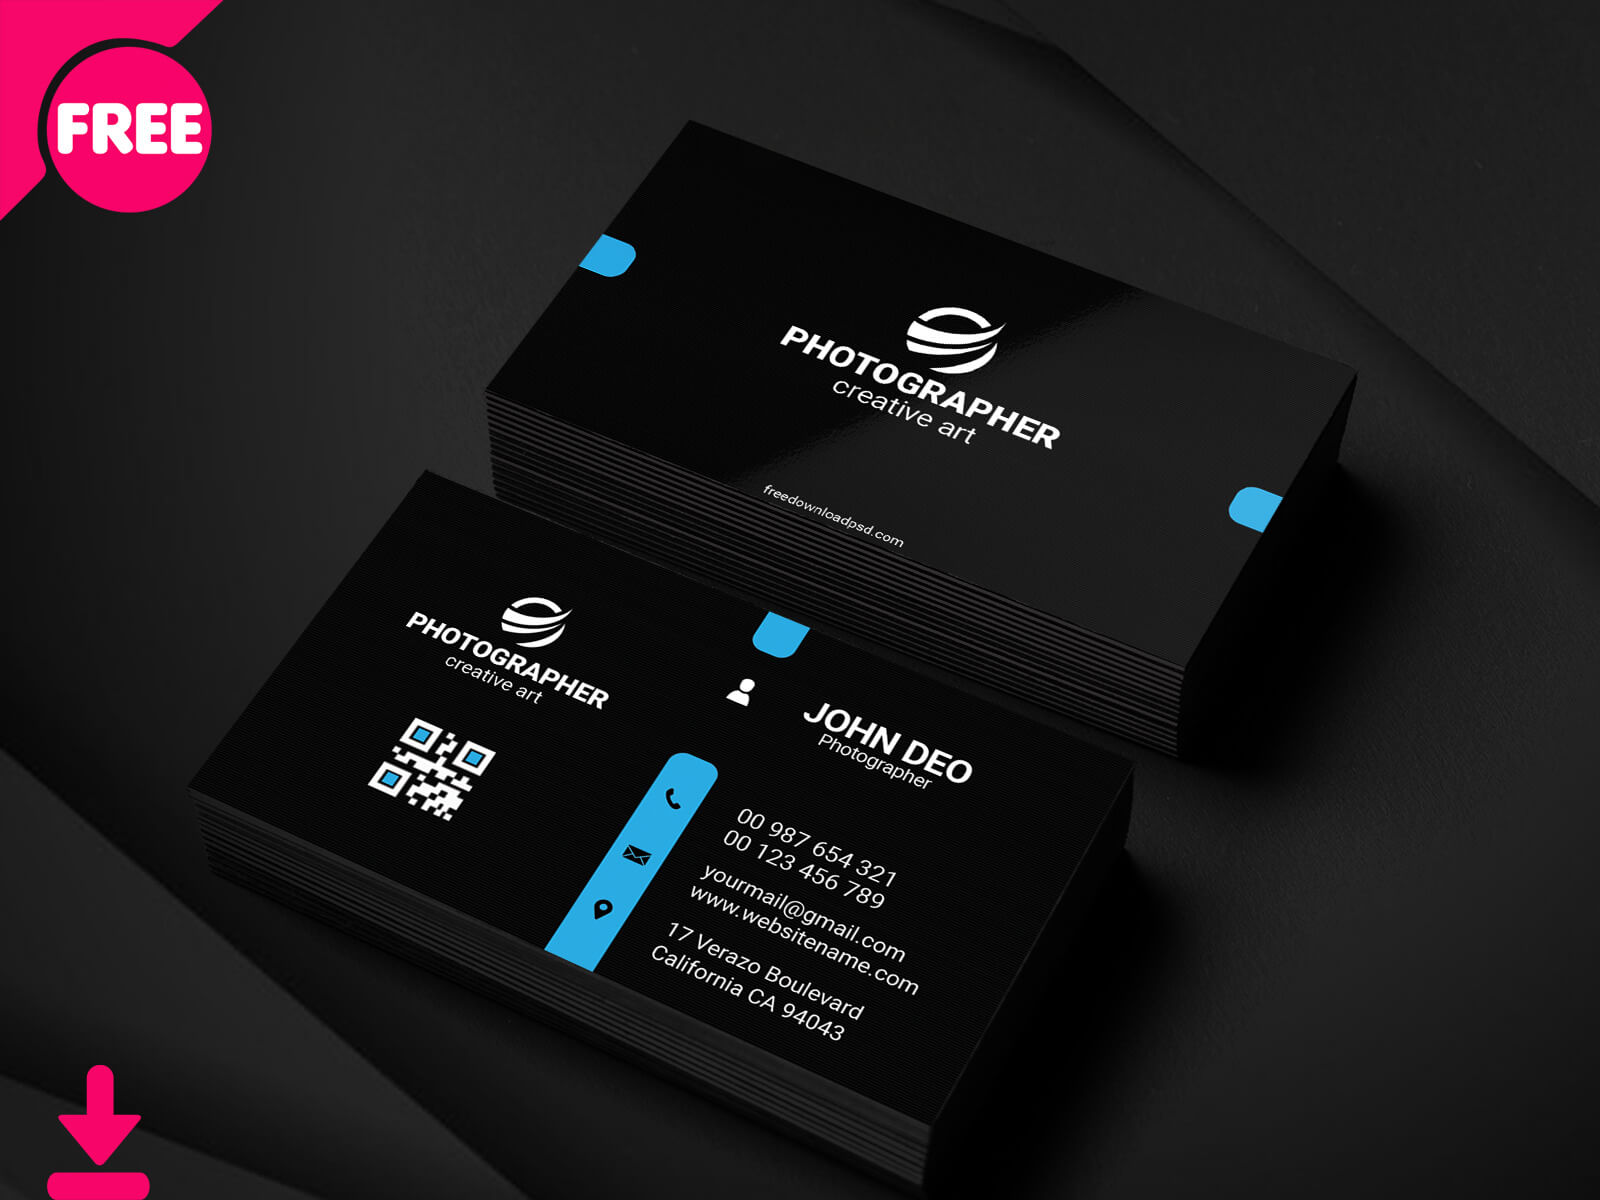 Dribbble - Free Personal Business Card Psd Template Cover Regarding Free Personal Business Card Templates